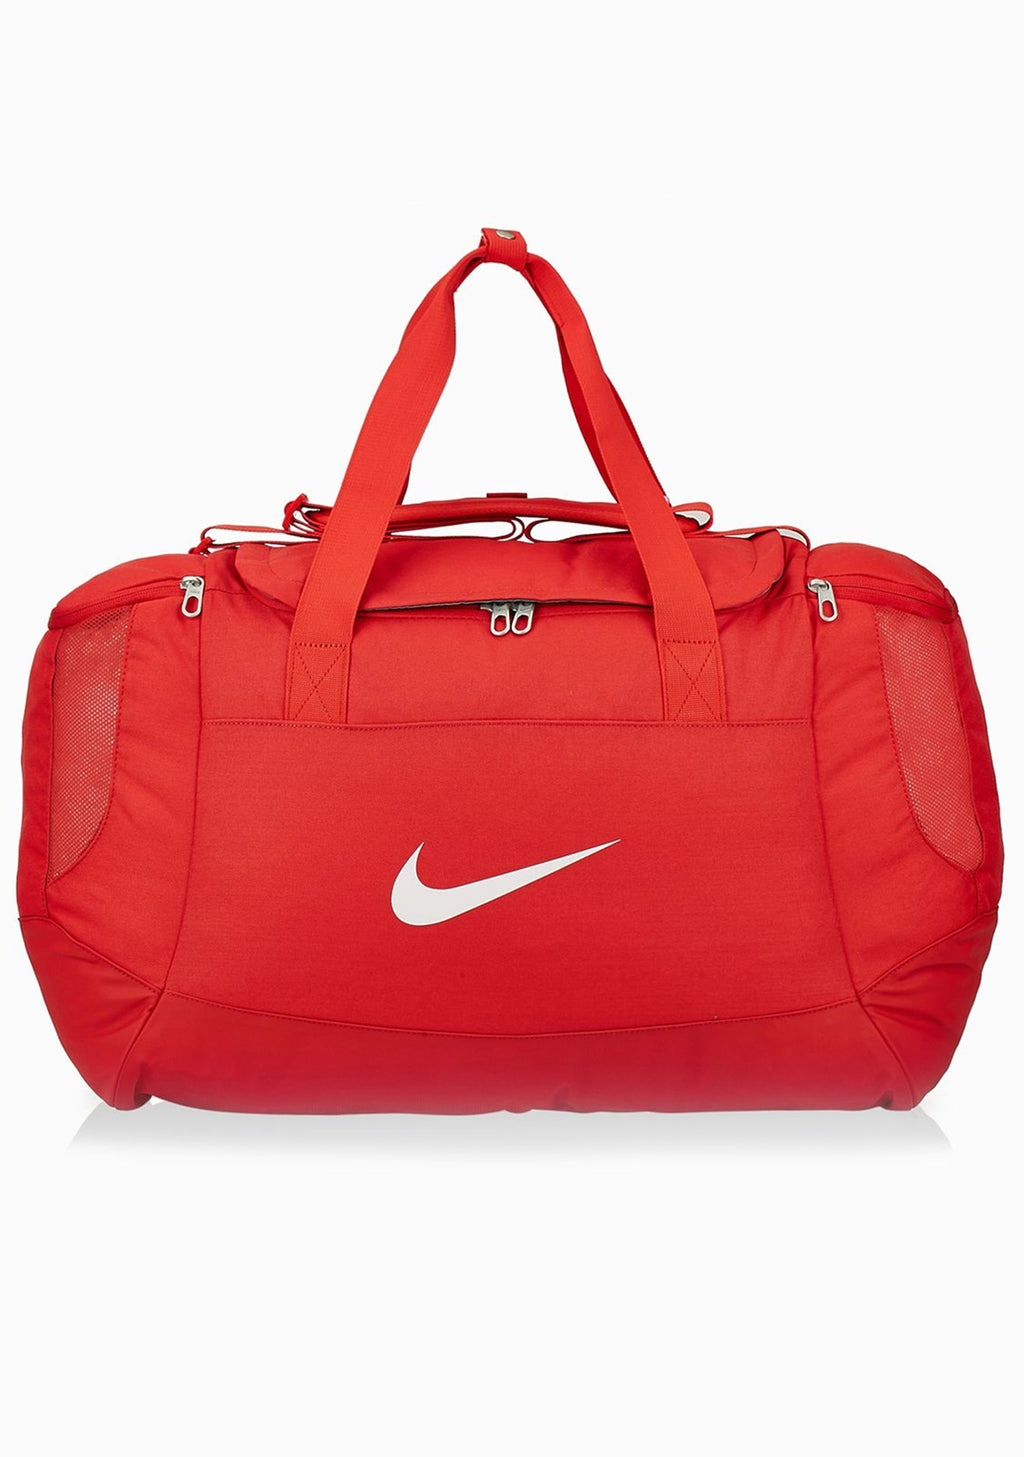 NIKE CLUB TEAM RED DUFFEL BAG <BR>BA5193 657